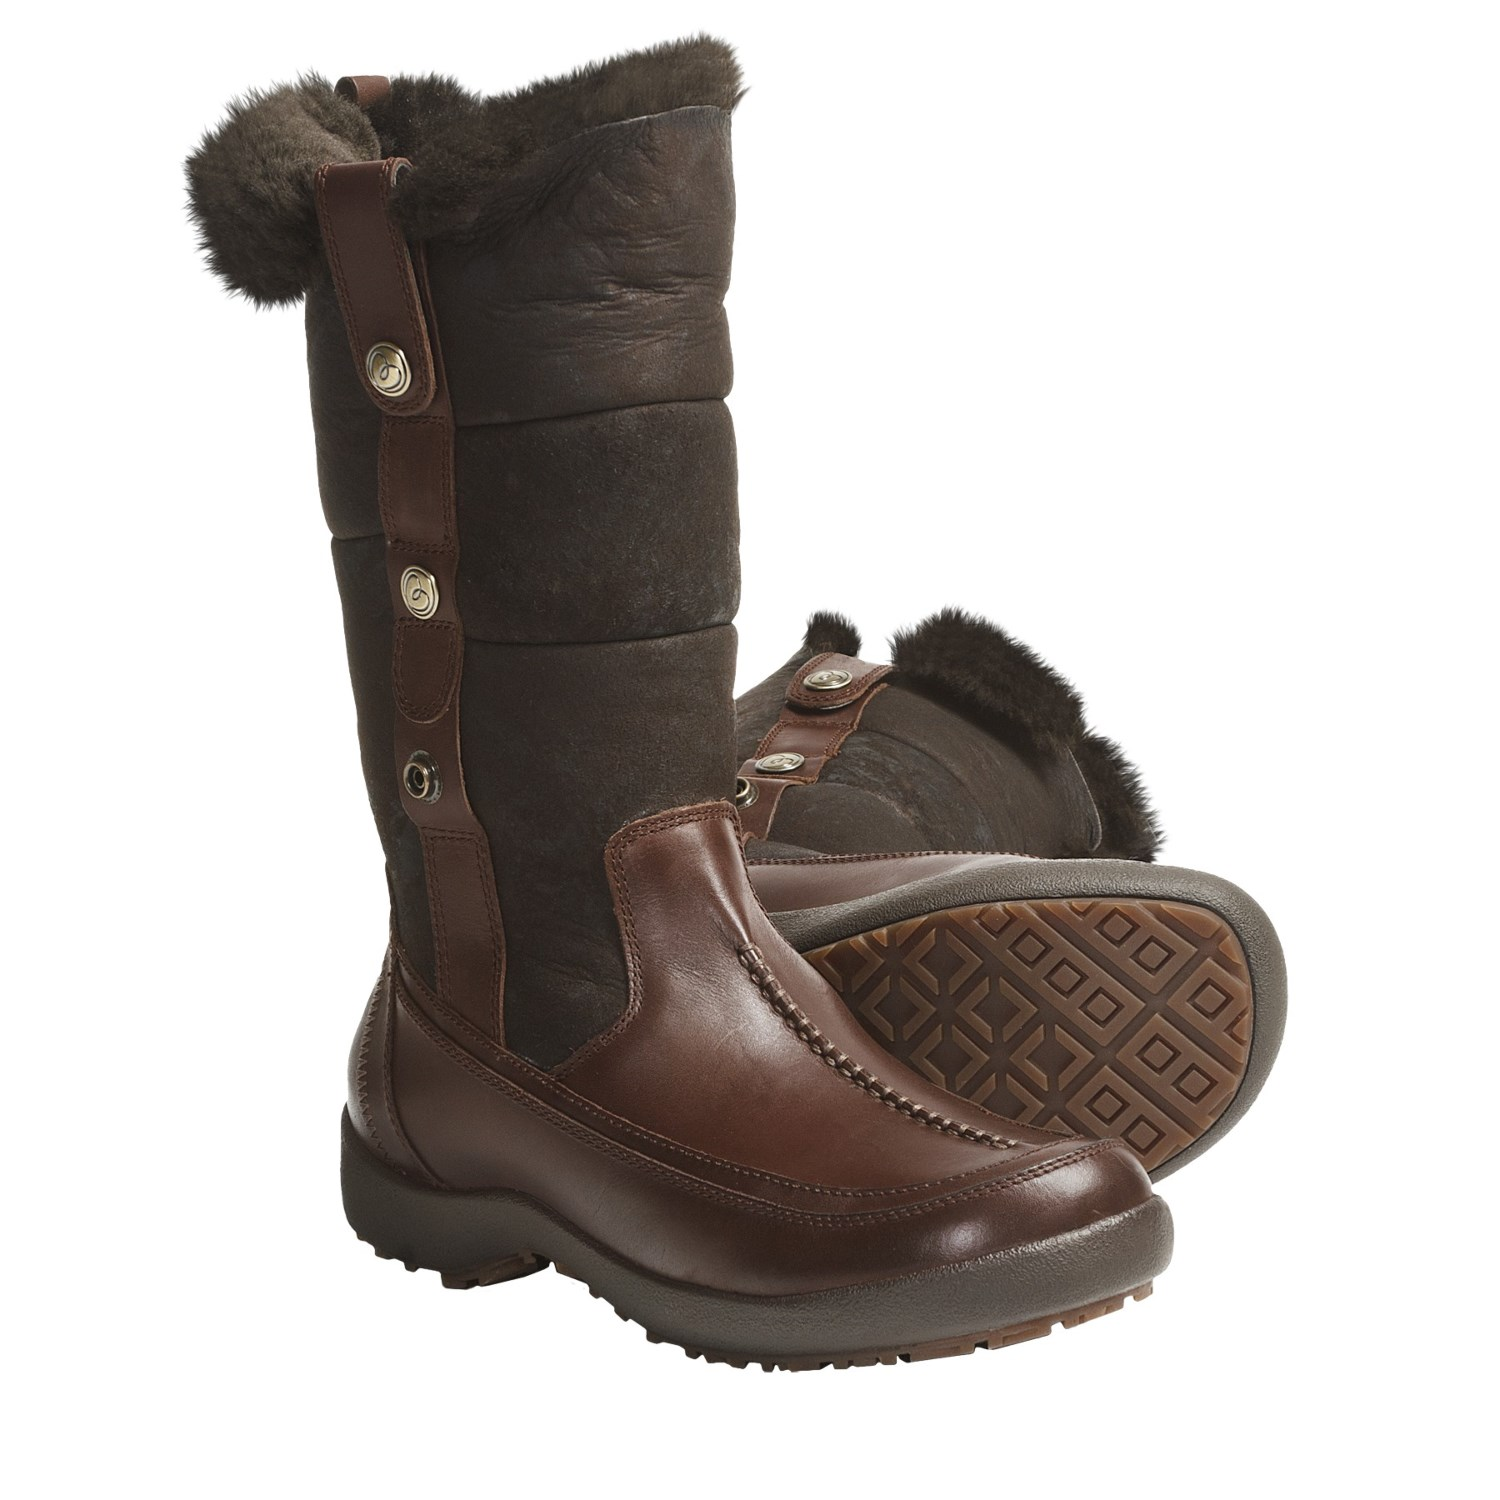 blondo mountain boots waterproof leather for